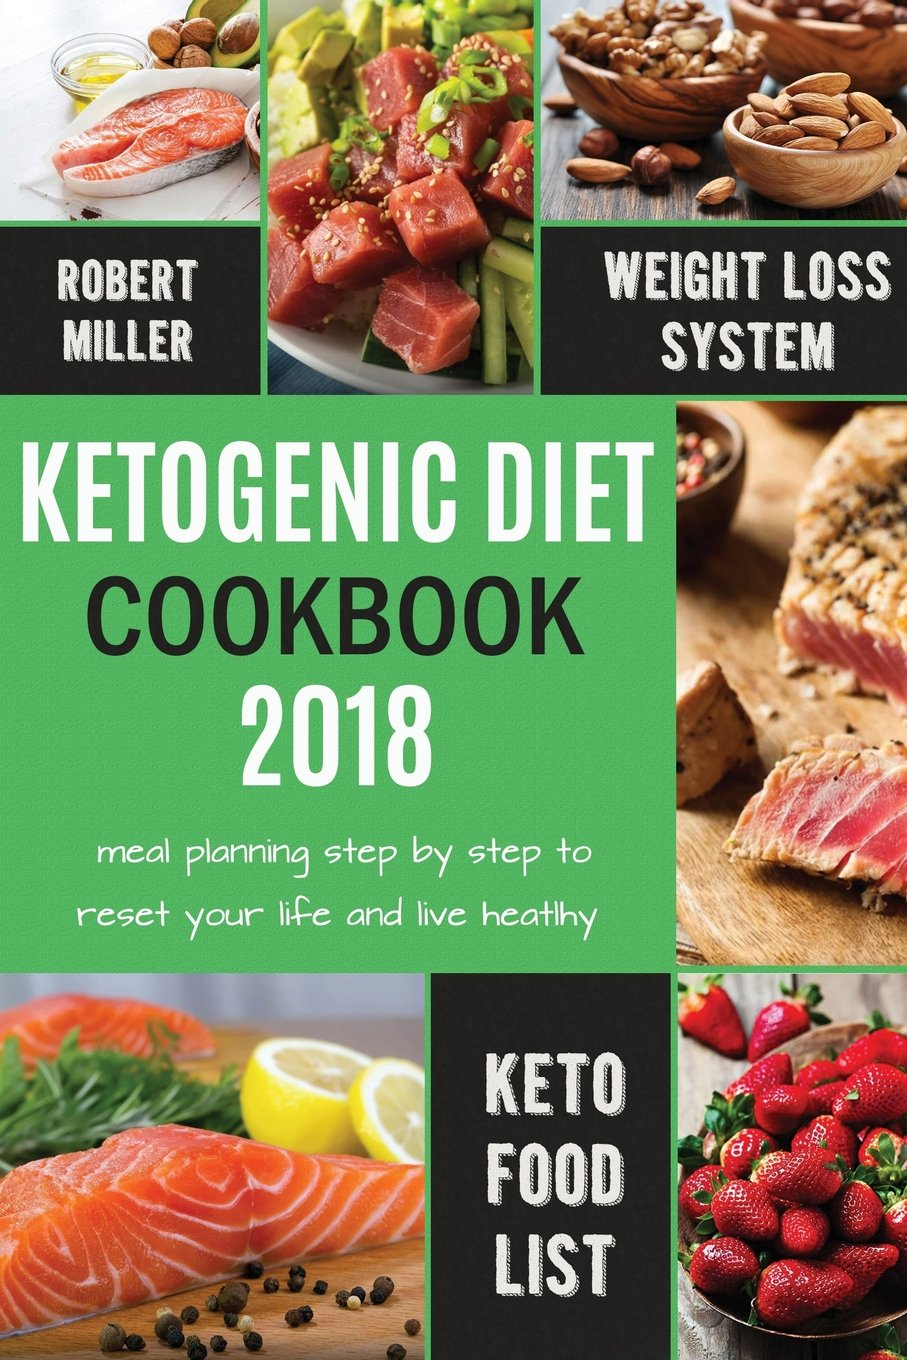 Ketogenic Diet Cookbook 2018 Meal Planning Step By Step To Reset